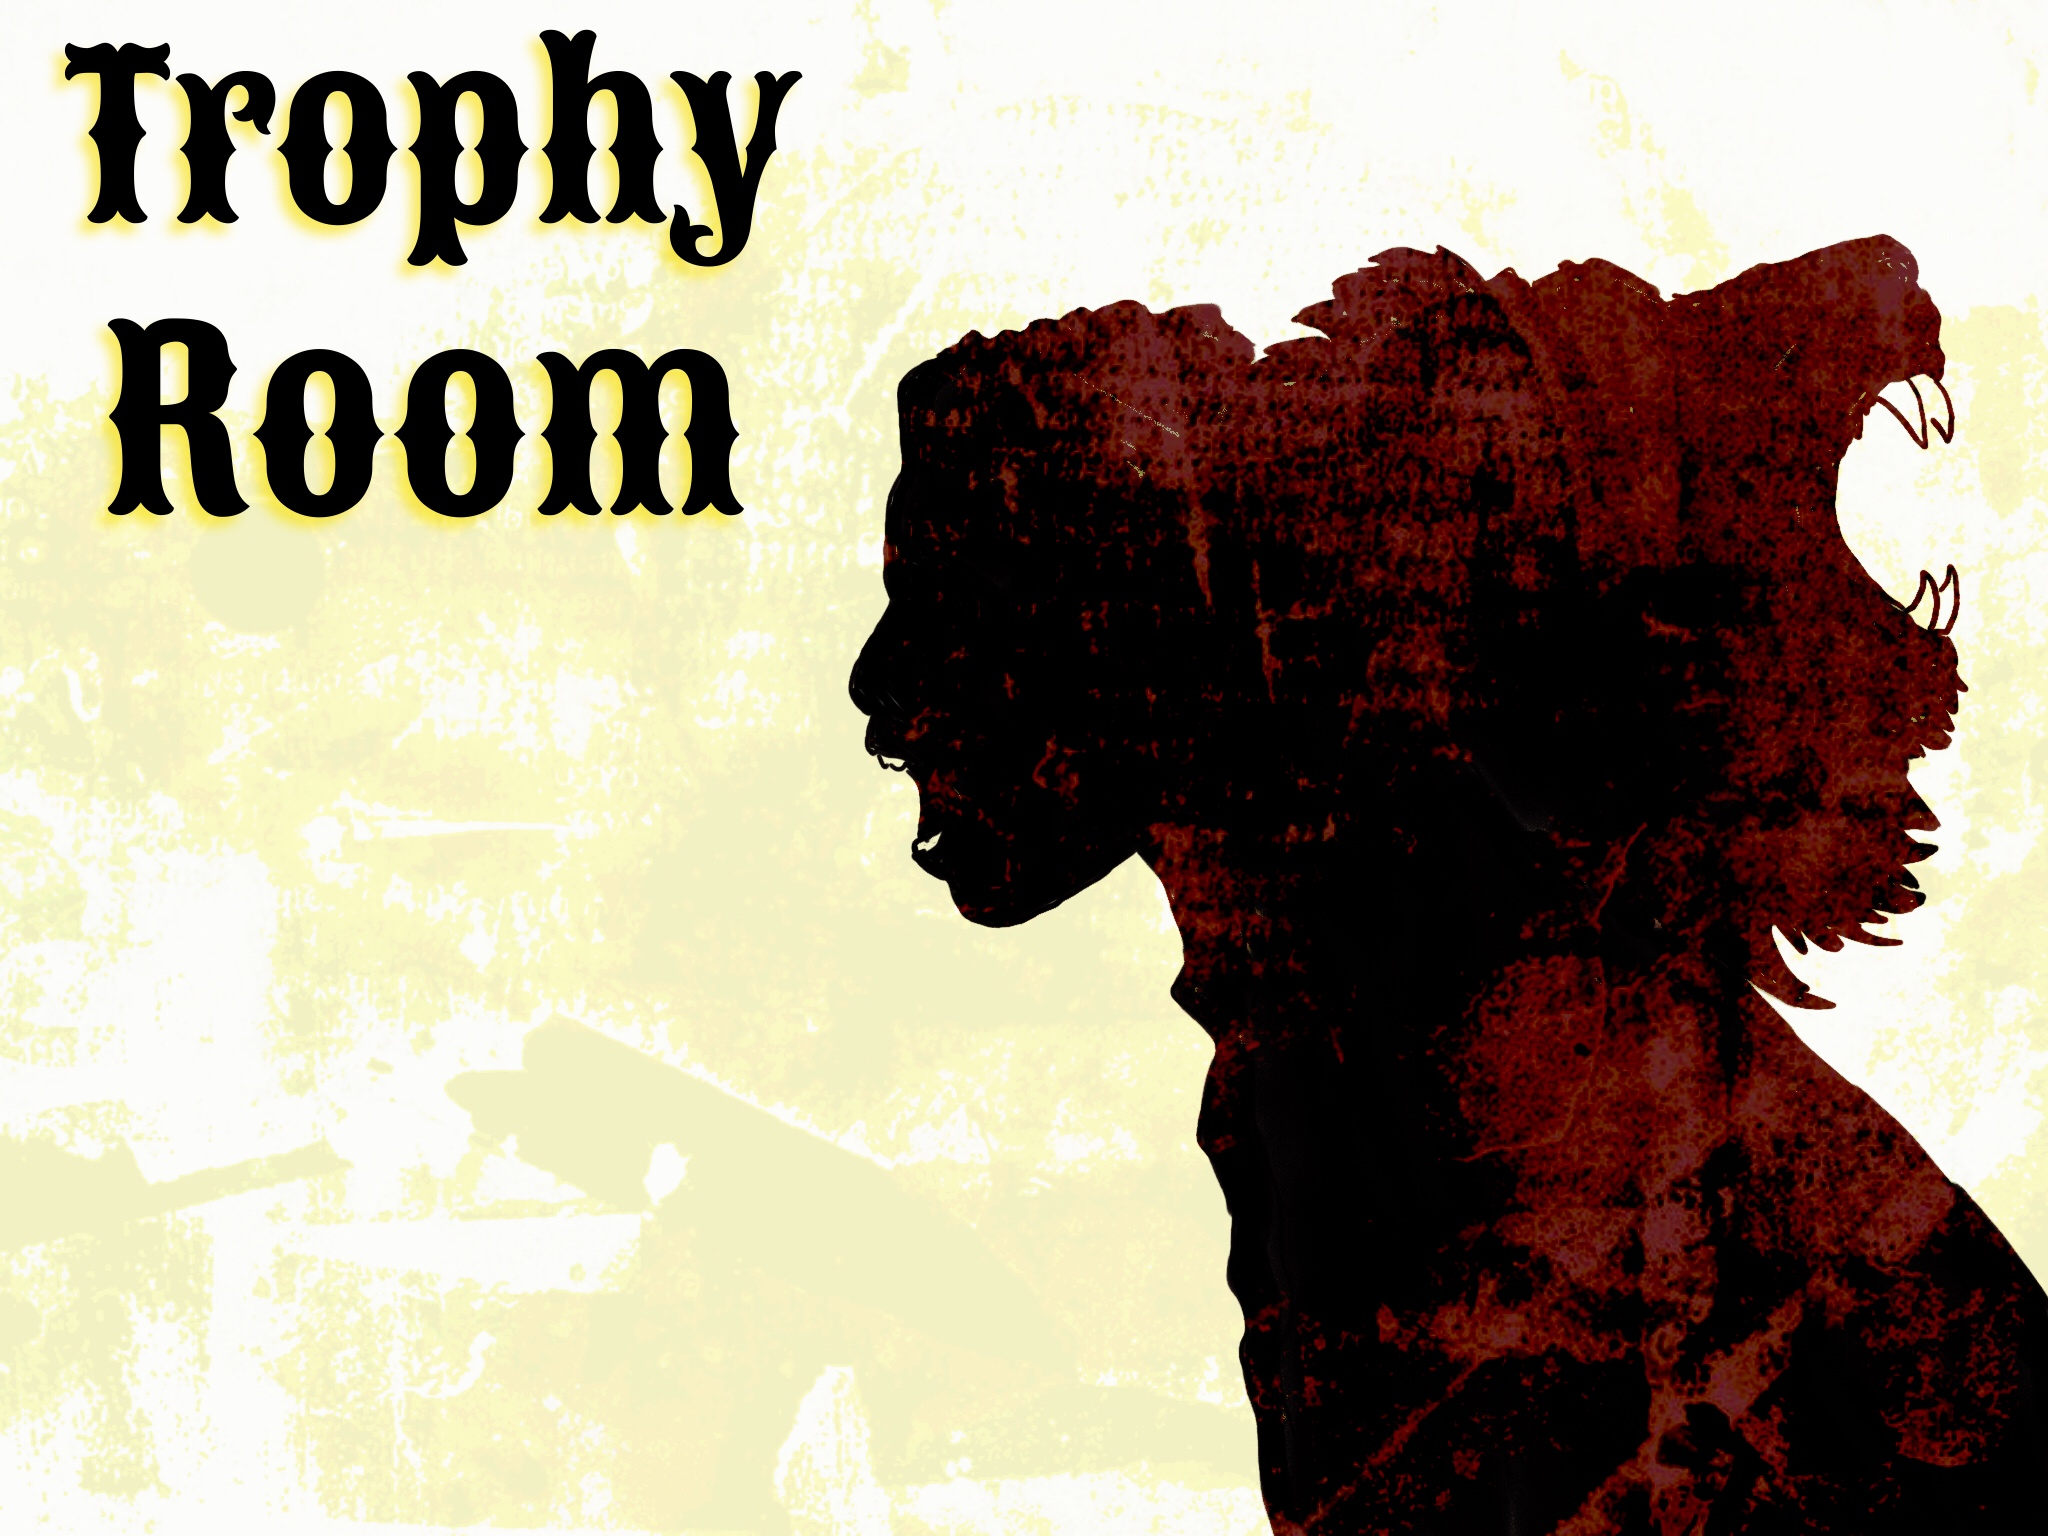 Trophy Room - Three security guards working the night shift at a customs repository get more than they bargained for when an extremely rare item arrives, a trophy which forces them to confront fears and prejudices hiding just below the surface.